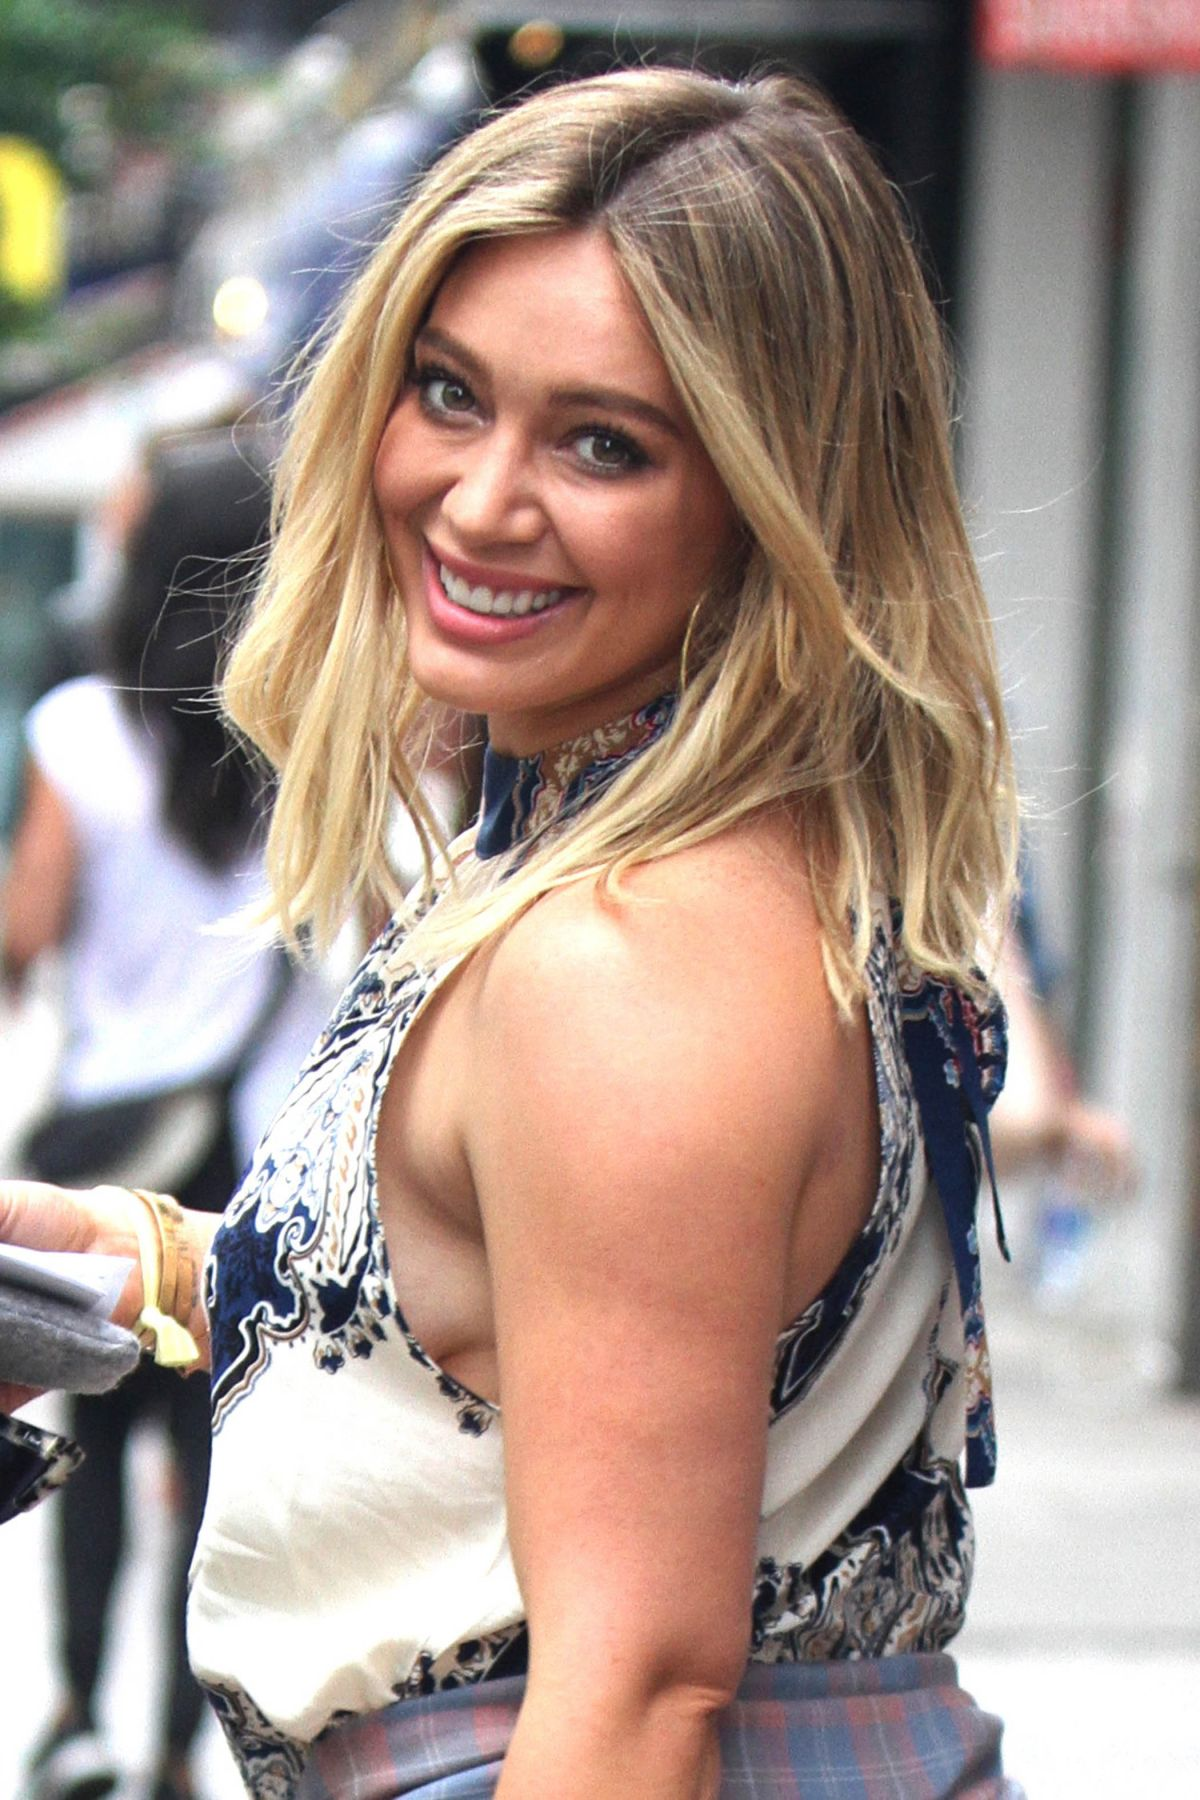 HILARY DUFF at 'Younger' Set in New York 06/16/2016 ... Hilary Duff